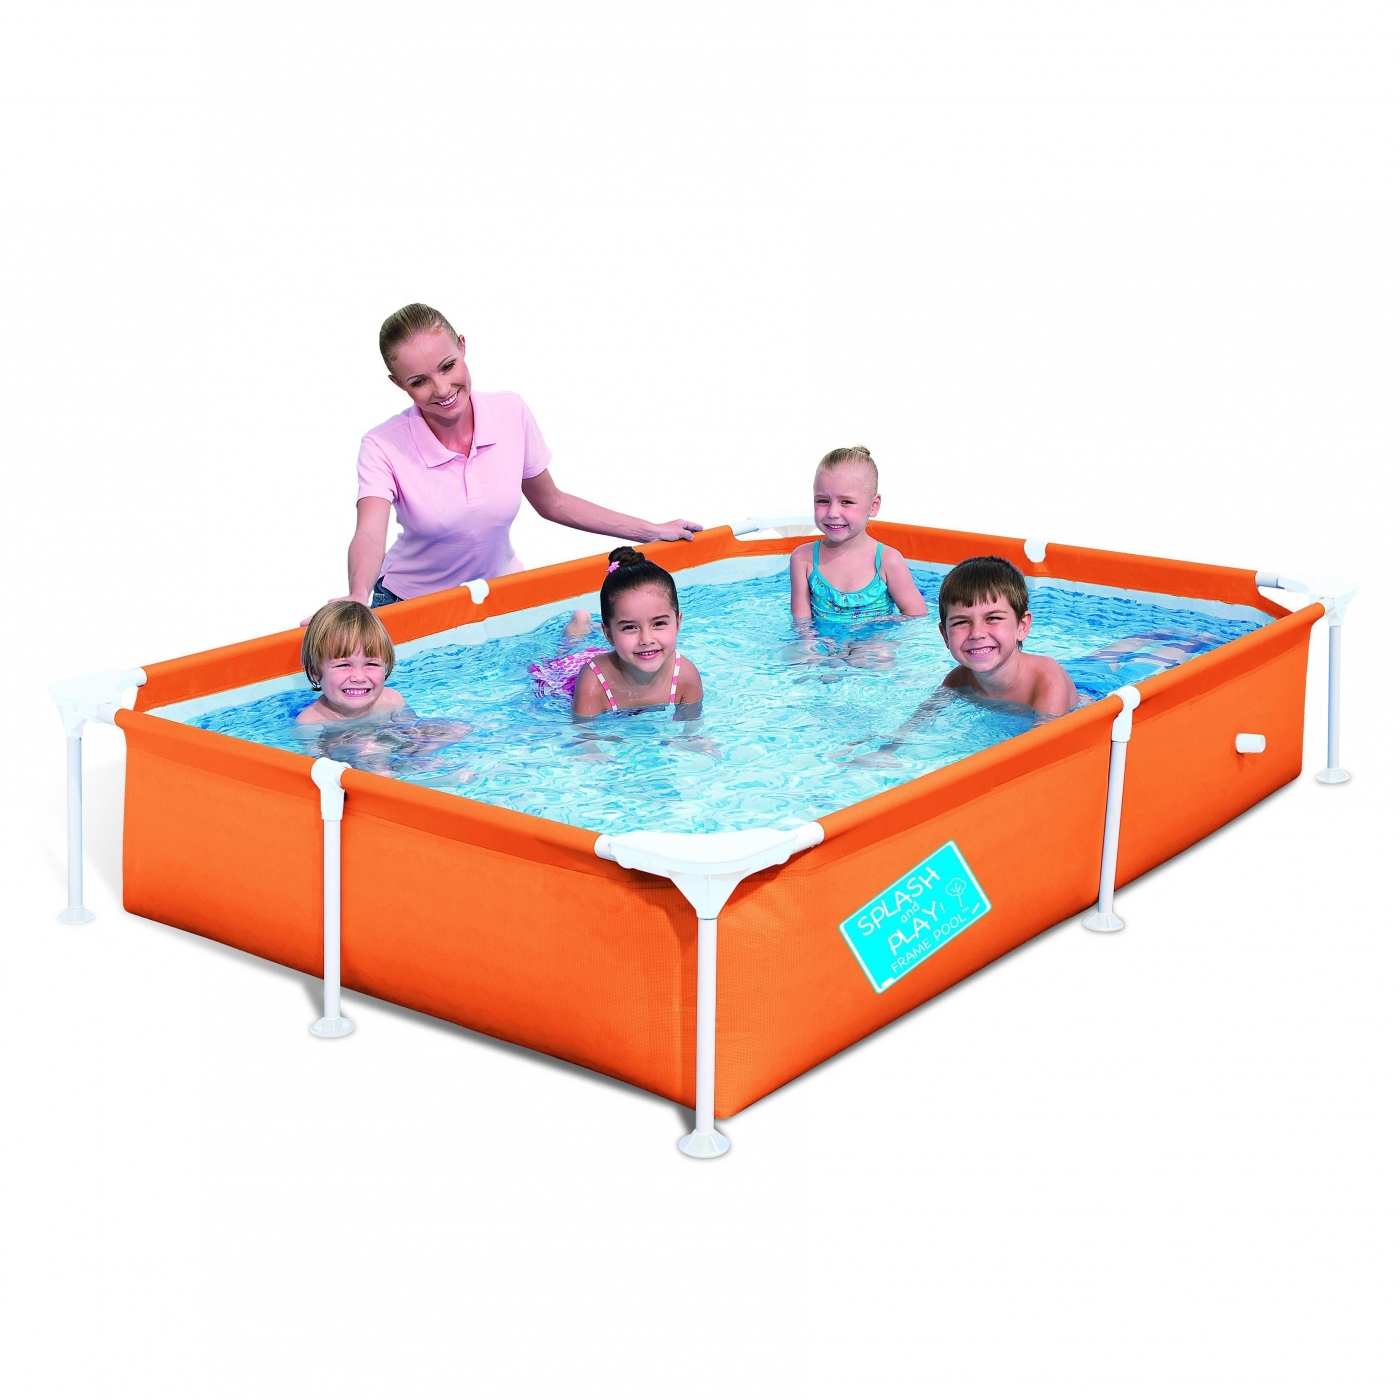 Piscina infantil my first frame naranja grande 221 x 150 x for Piscina infantil